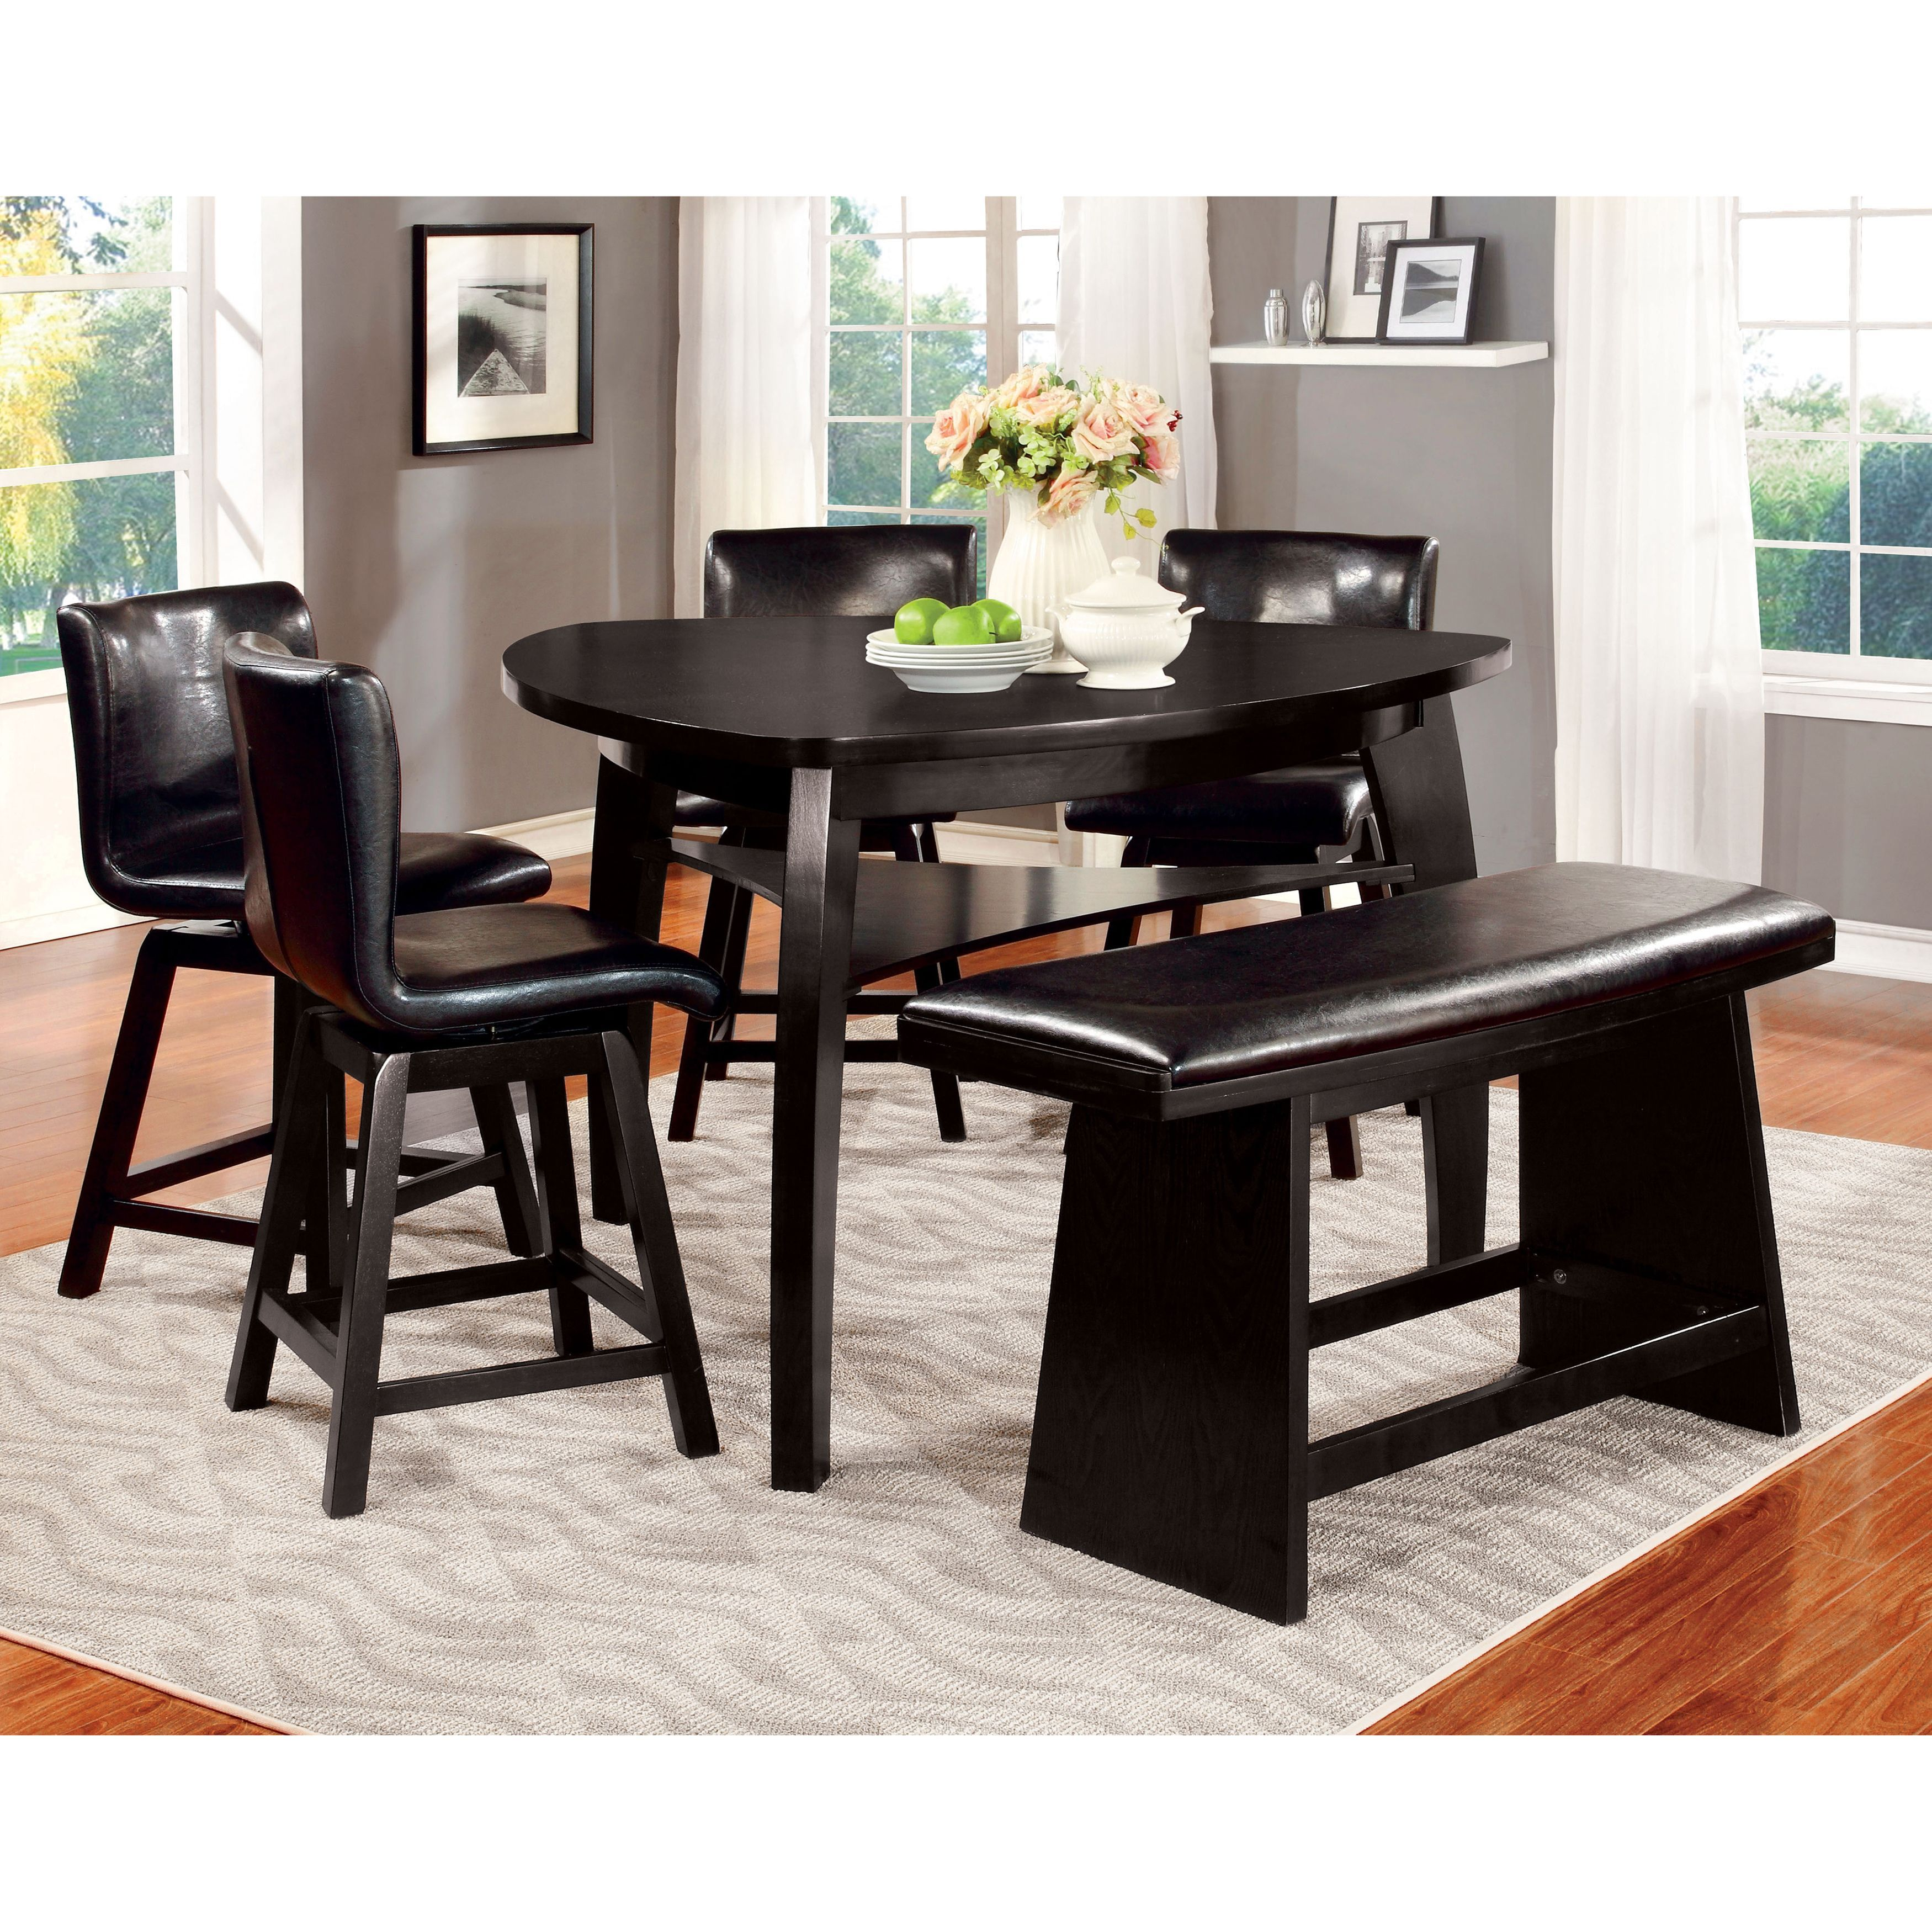 Triangle Counter Height Table Barstools Dining Room Table Dining Room Table Decor Patio Dining Table